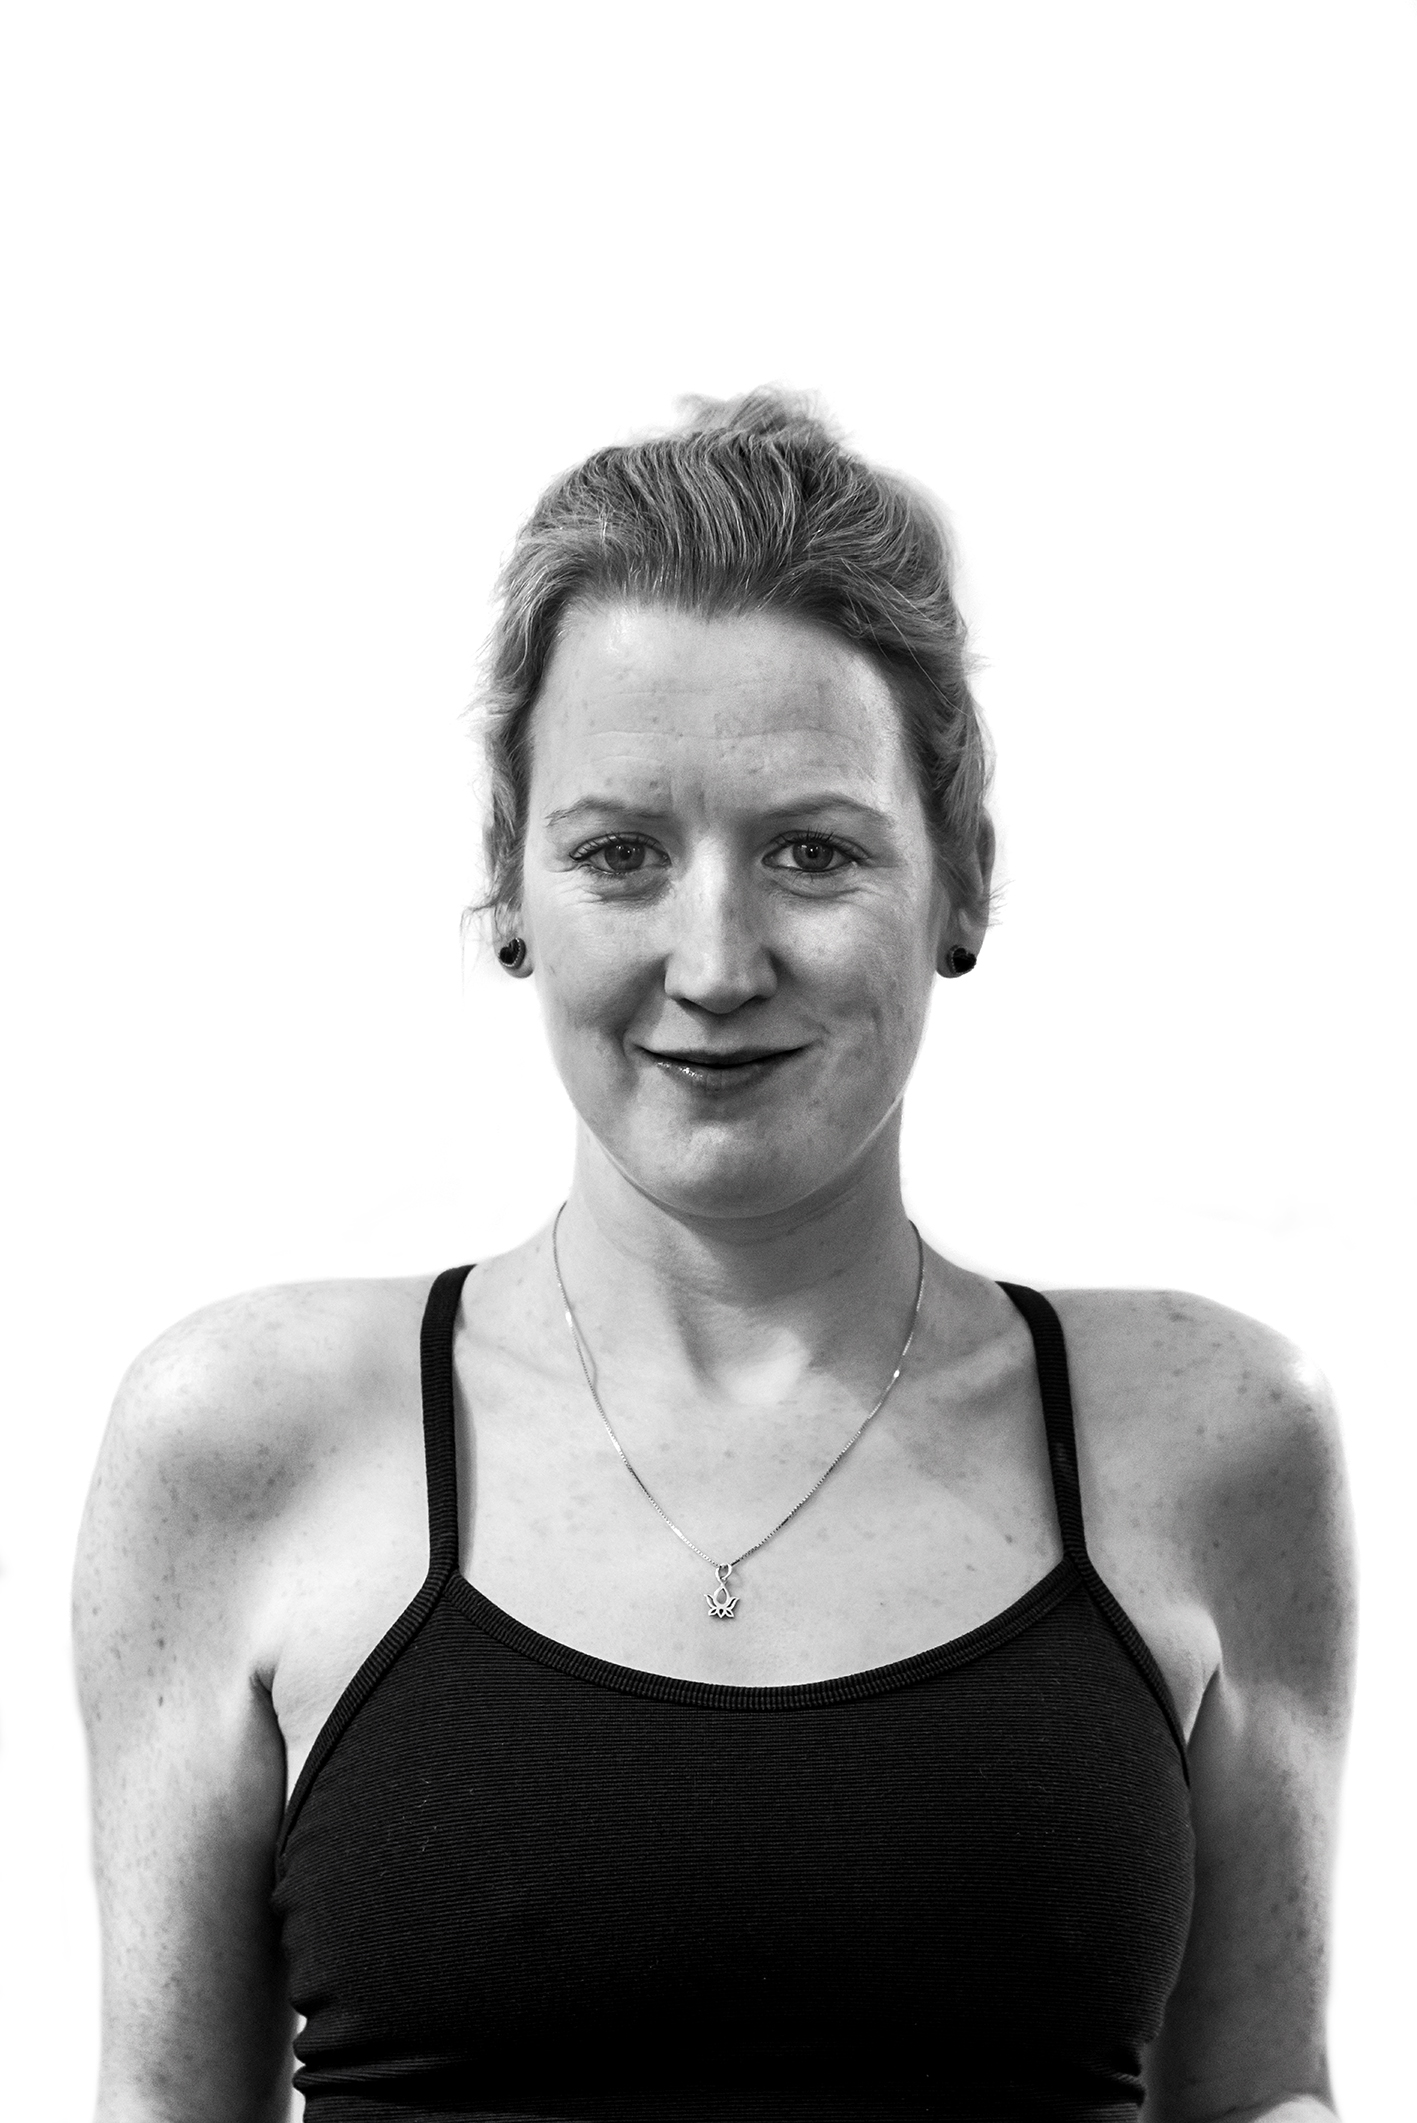 Jenni CunniffeYoga + Running - A keen marathon runner and cyclist; Jenni is passionate about using yoga to enhance sports performance - be it training for a race or getting the most out of your weekly jogs. She currently mixes teaching at traditional studios with leading groups at the local running and rowing clubs as well as primary and secondary schools.Jenni discovered yoga 5 years ago when working full time as a clothing designer and training for long distance running events in her spare time. She then completed her 200 hour Yoga Teacher Training course at The House of Yoga in 2015, fuelled by a desire to share her enthusiasm and the benefits she was feeling from her practice with others. Not only did yoga help her improve her strength and flexibility, but she loved the philosophical and spiritual approach to the asana practice. Her aim in teaching yoga is to create a safe space for all students. A place where they are encouraged to be themselves, letting go of personal judgment or comparison with others. Jenni is also proud to be an England Athletics Coach.QUALIFICATIONS: 200 hr RYT | EA Coach | PT | Enhanced DBS |